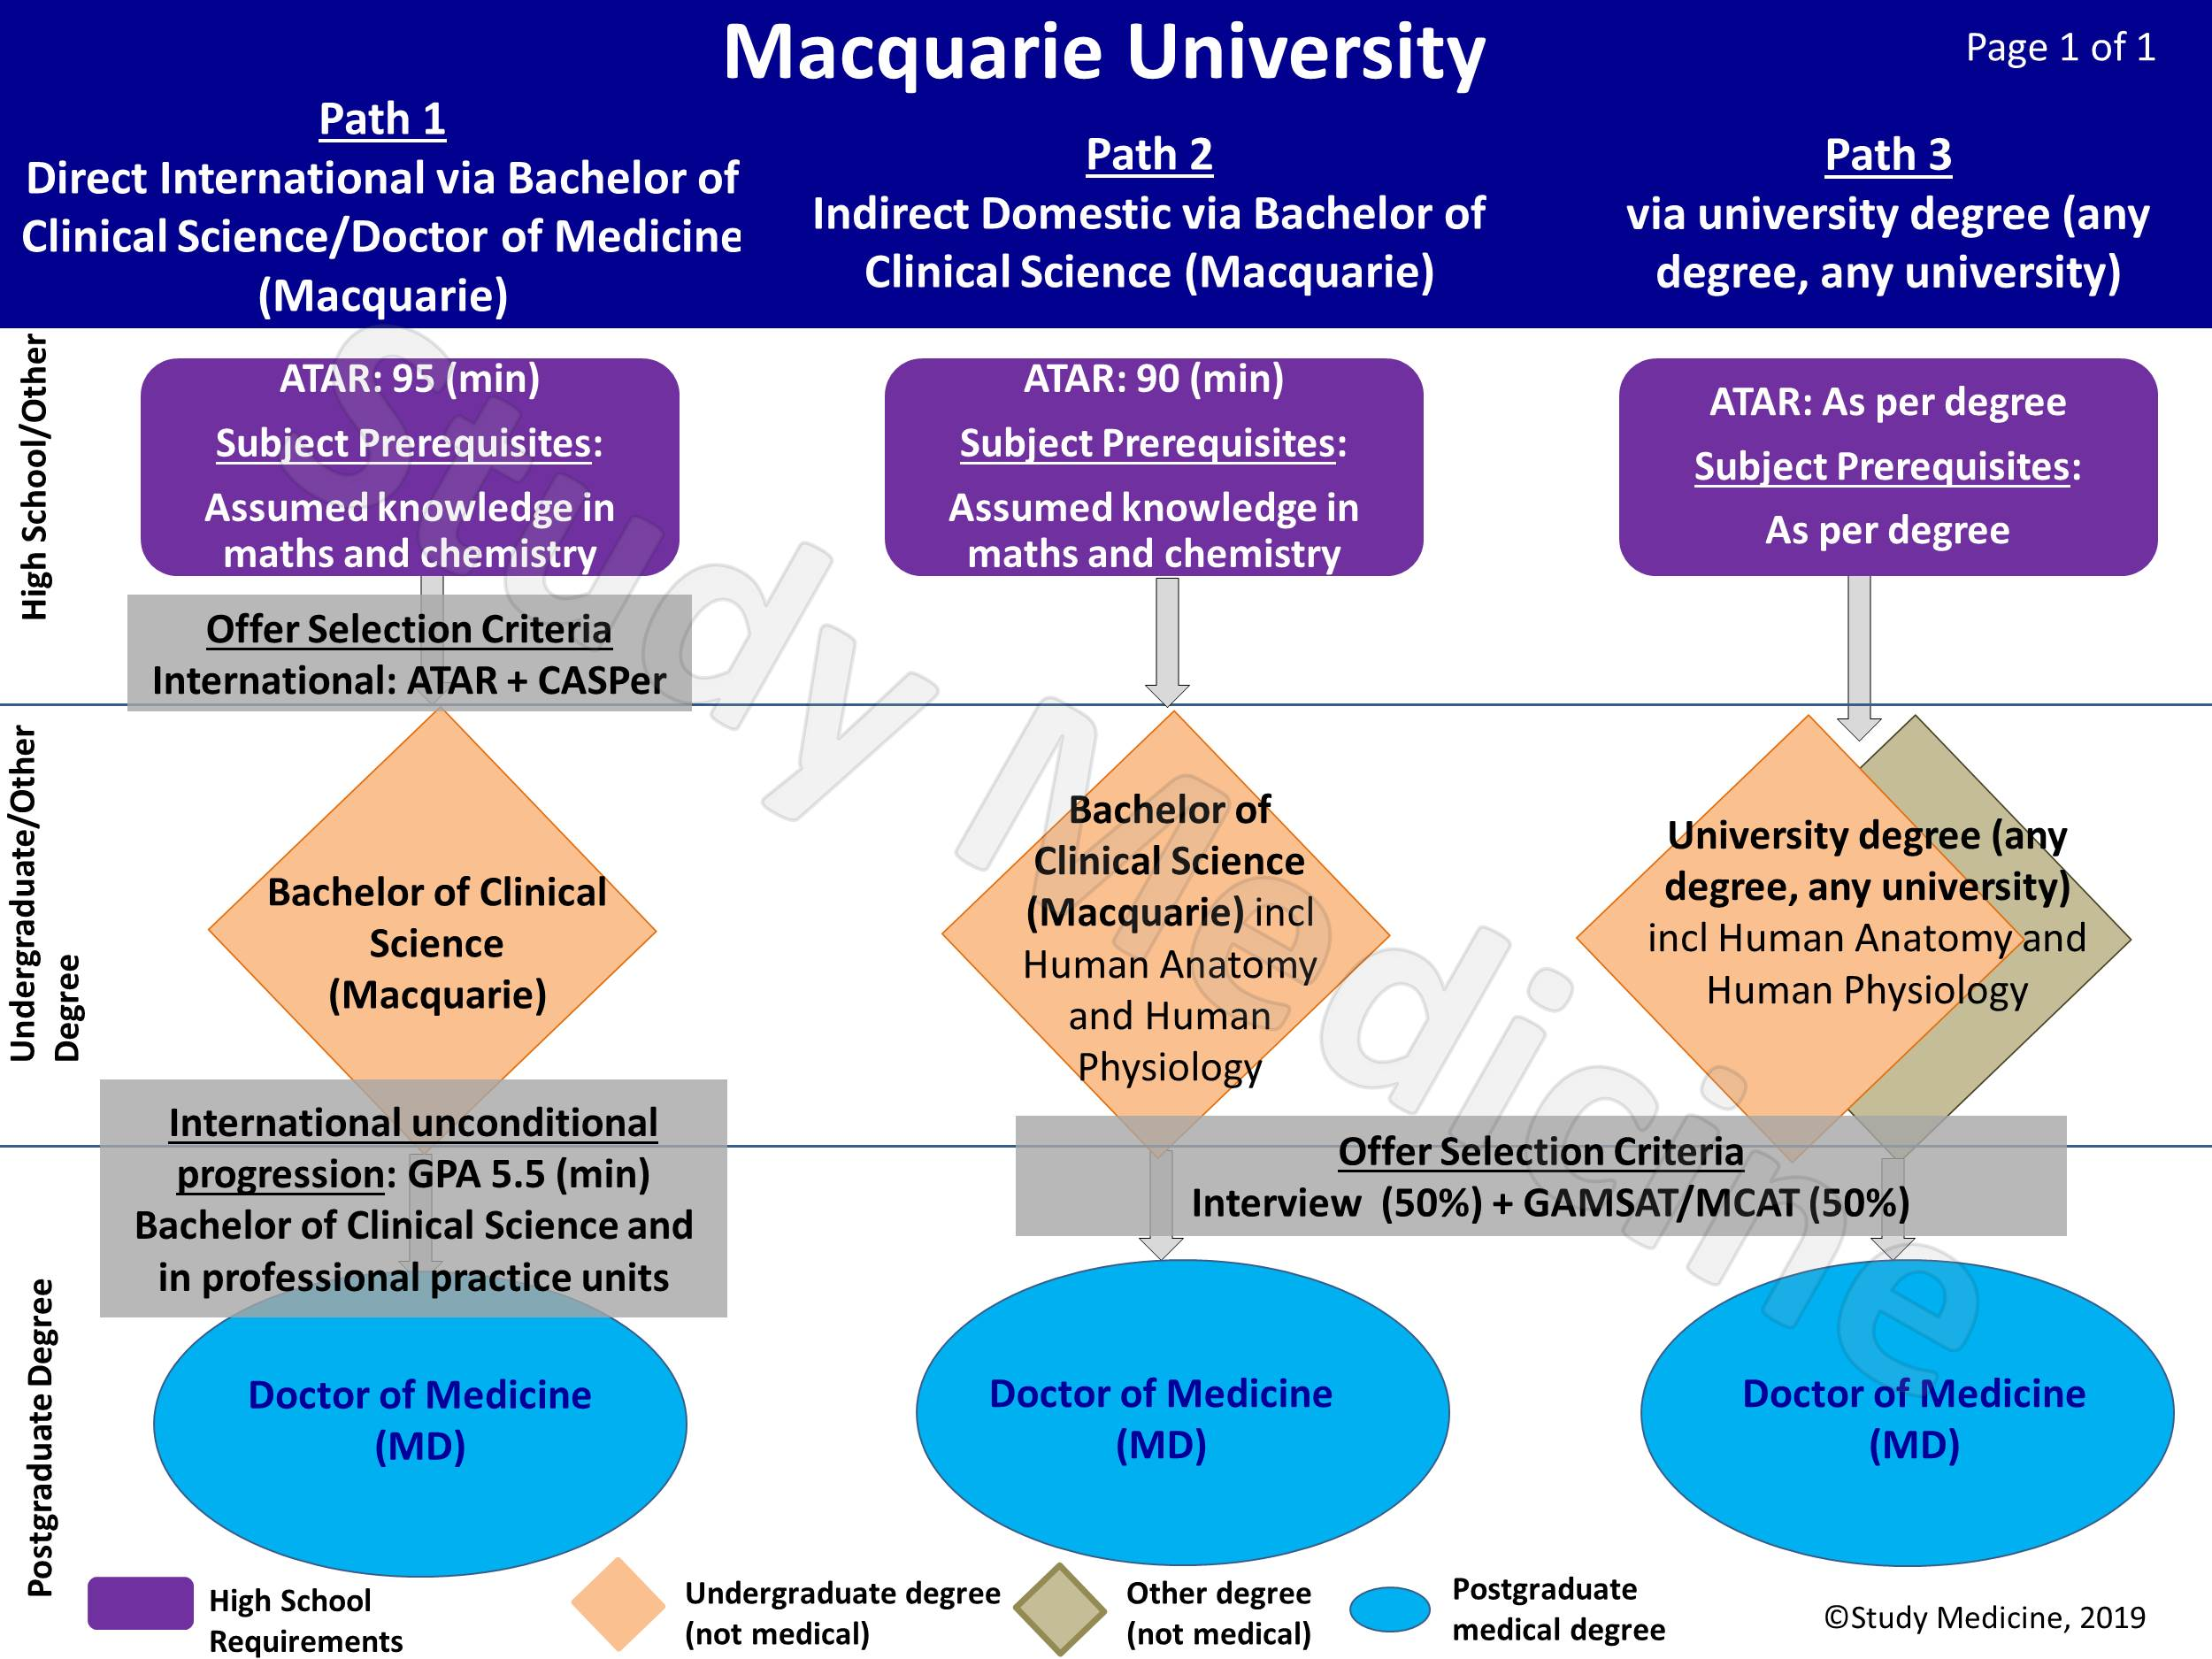 macquarie-medical-school-paths17319.jpg